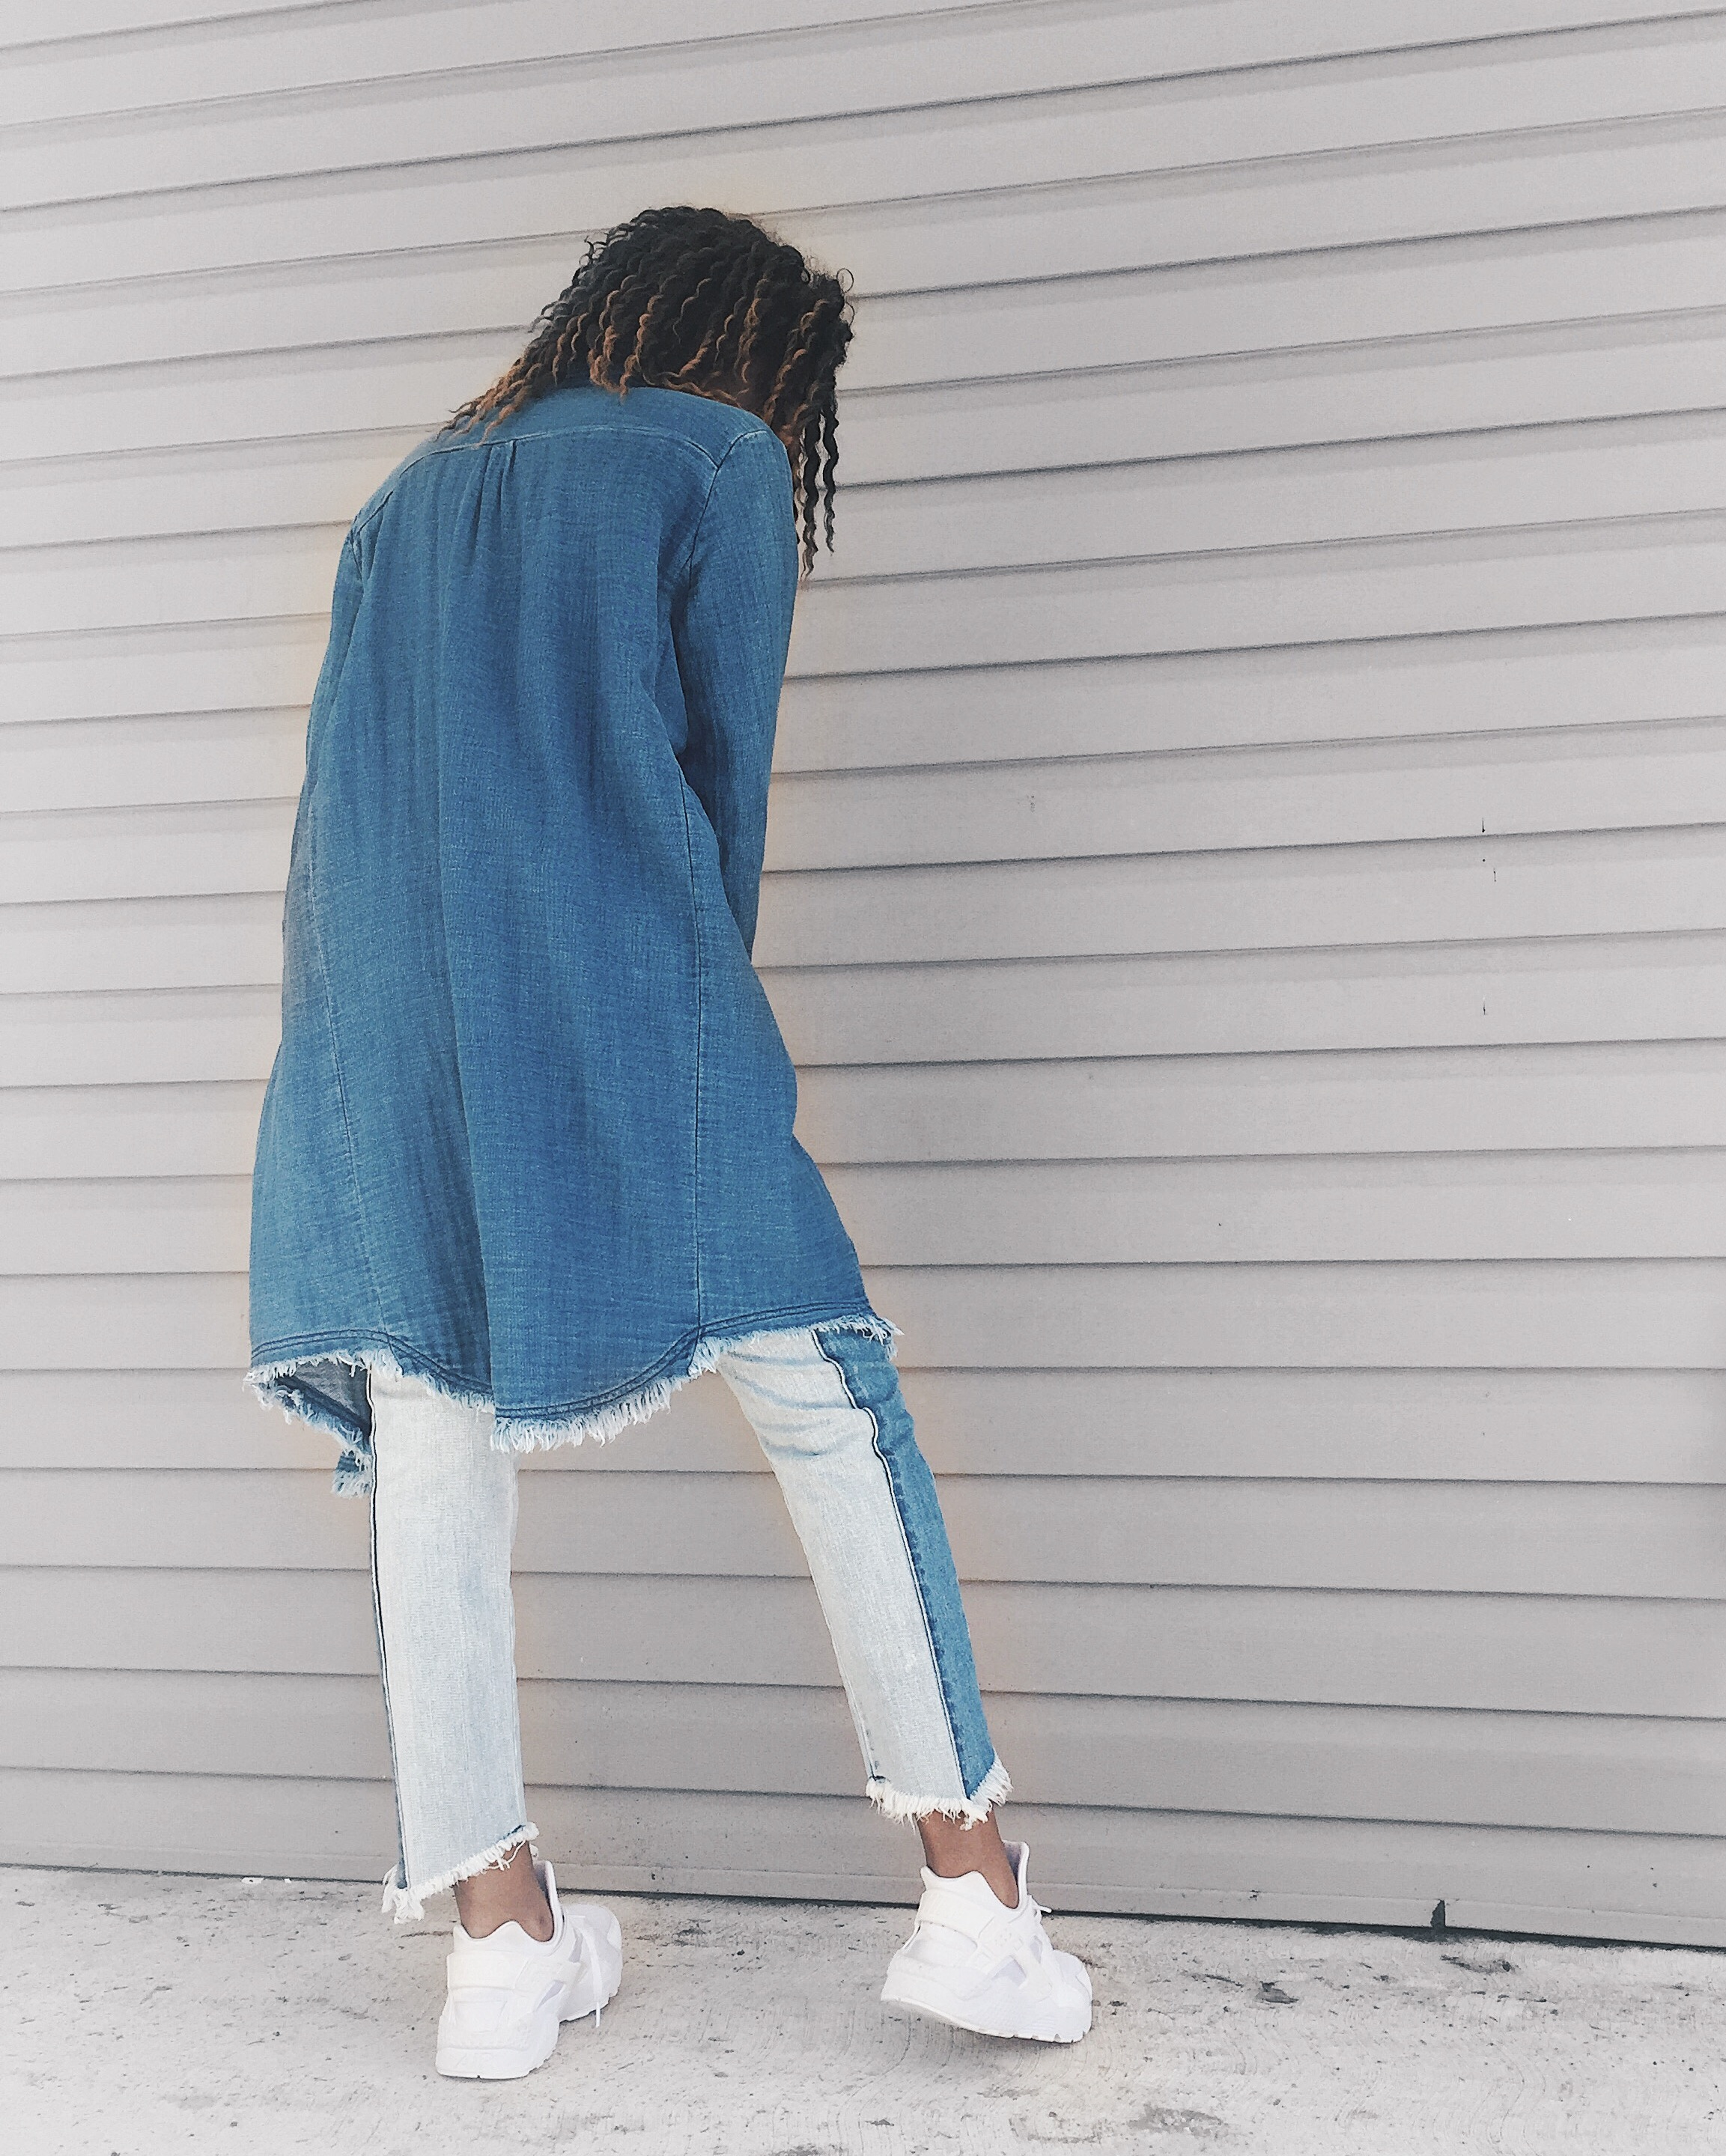 Zara long denim coat, American Eagle jeans, white t-shirt, white Nike huarache sneakers